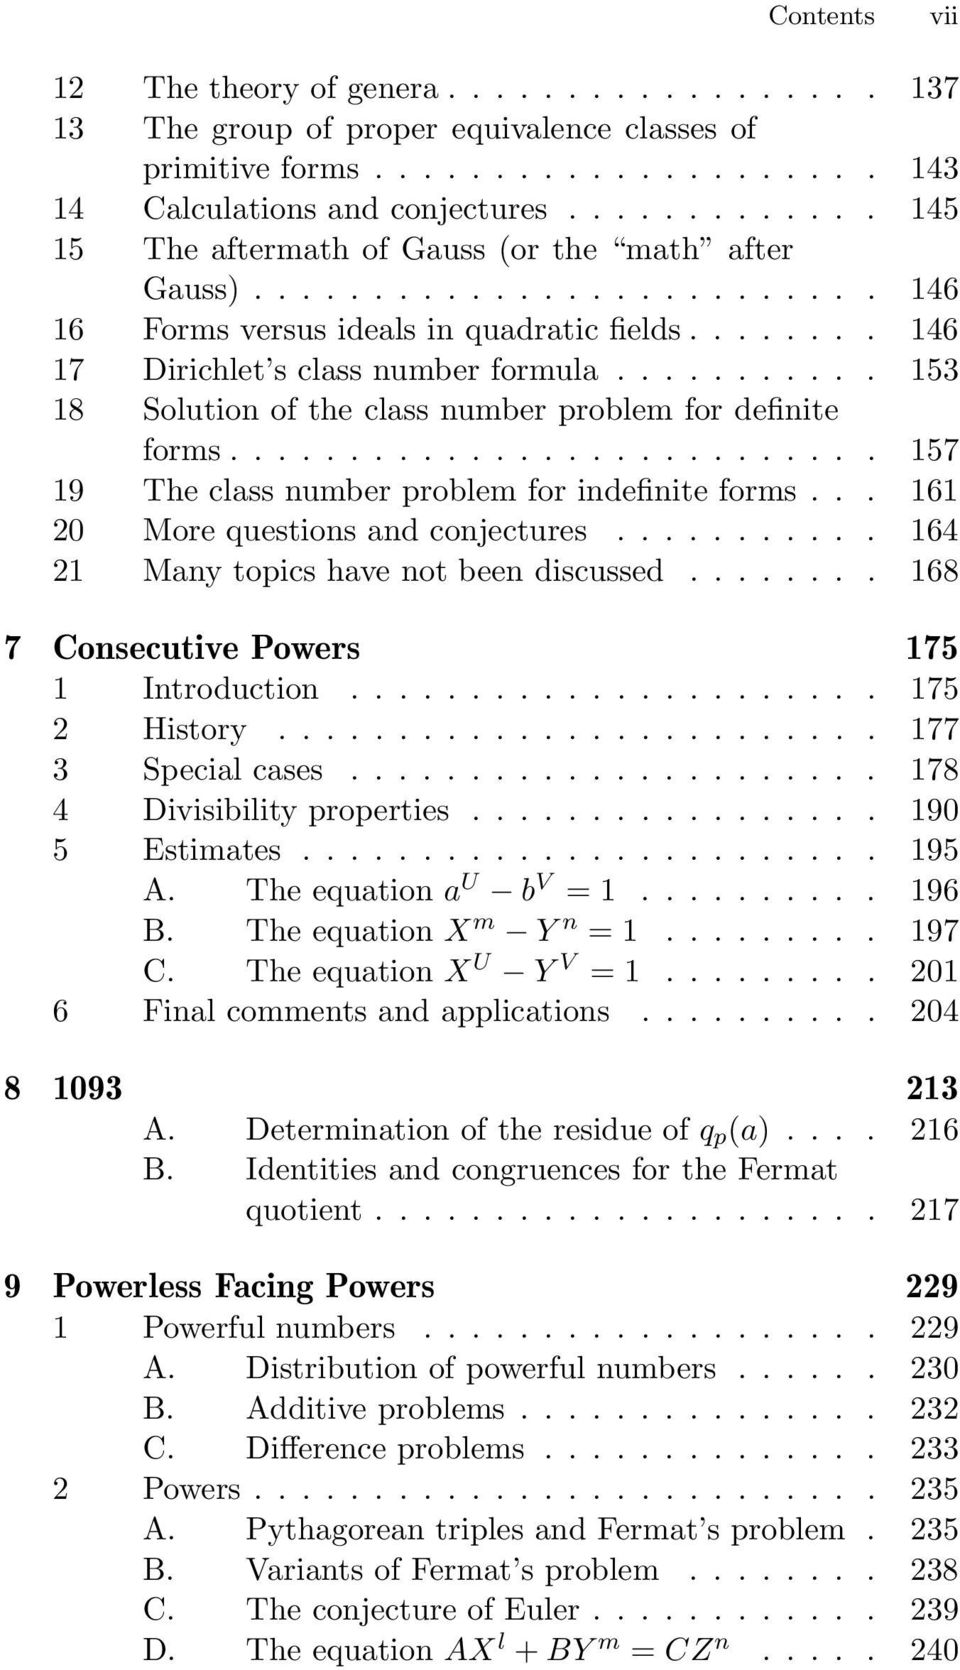 ... 157 19 The class number problem for indefinite forms... 161 20 Morequestionsandconjectures.... 164 21 Many topics have not been discussed.... 168 7 Consecutive Powers 175 1 Introduction.